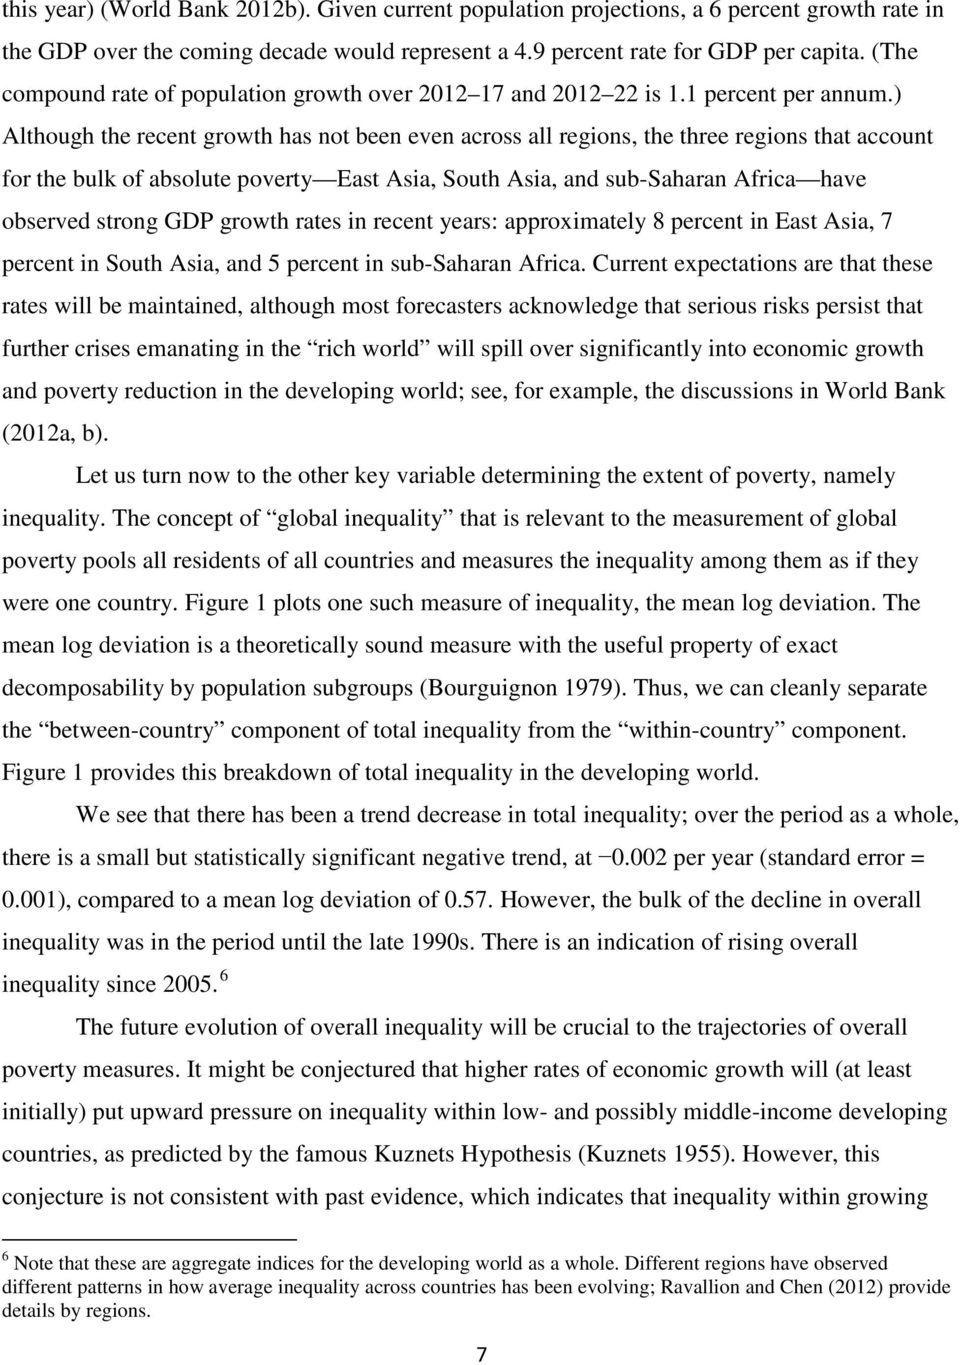 ) Although the recent growth has not been even across all regions, the three regions that account for the bulk of absolute poverty East Asia, South Asia, and sub-saharan Africa have observed strong